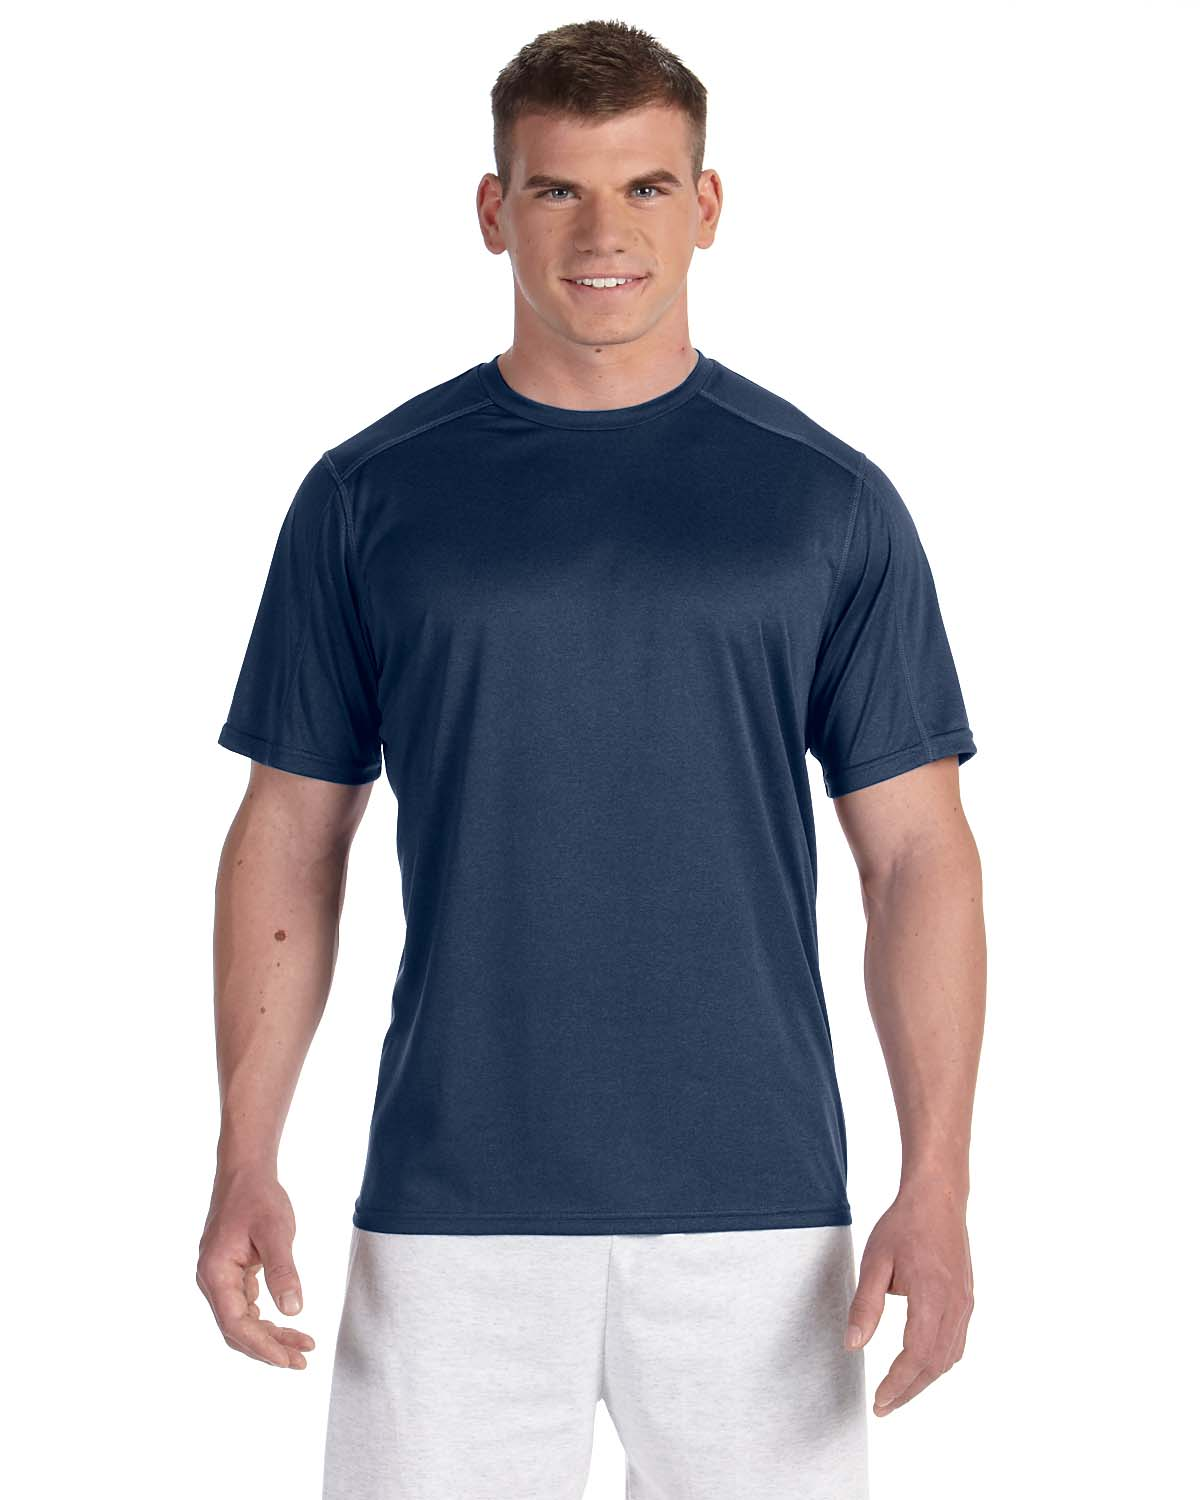 Champion Vapor® 4 Oz. T-Shirt